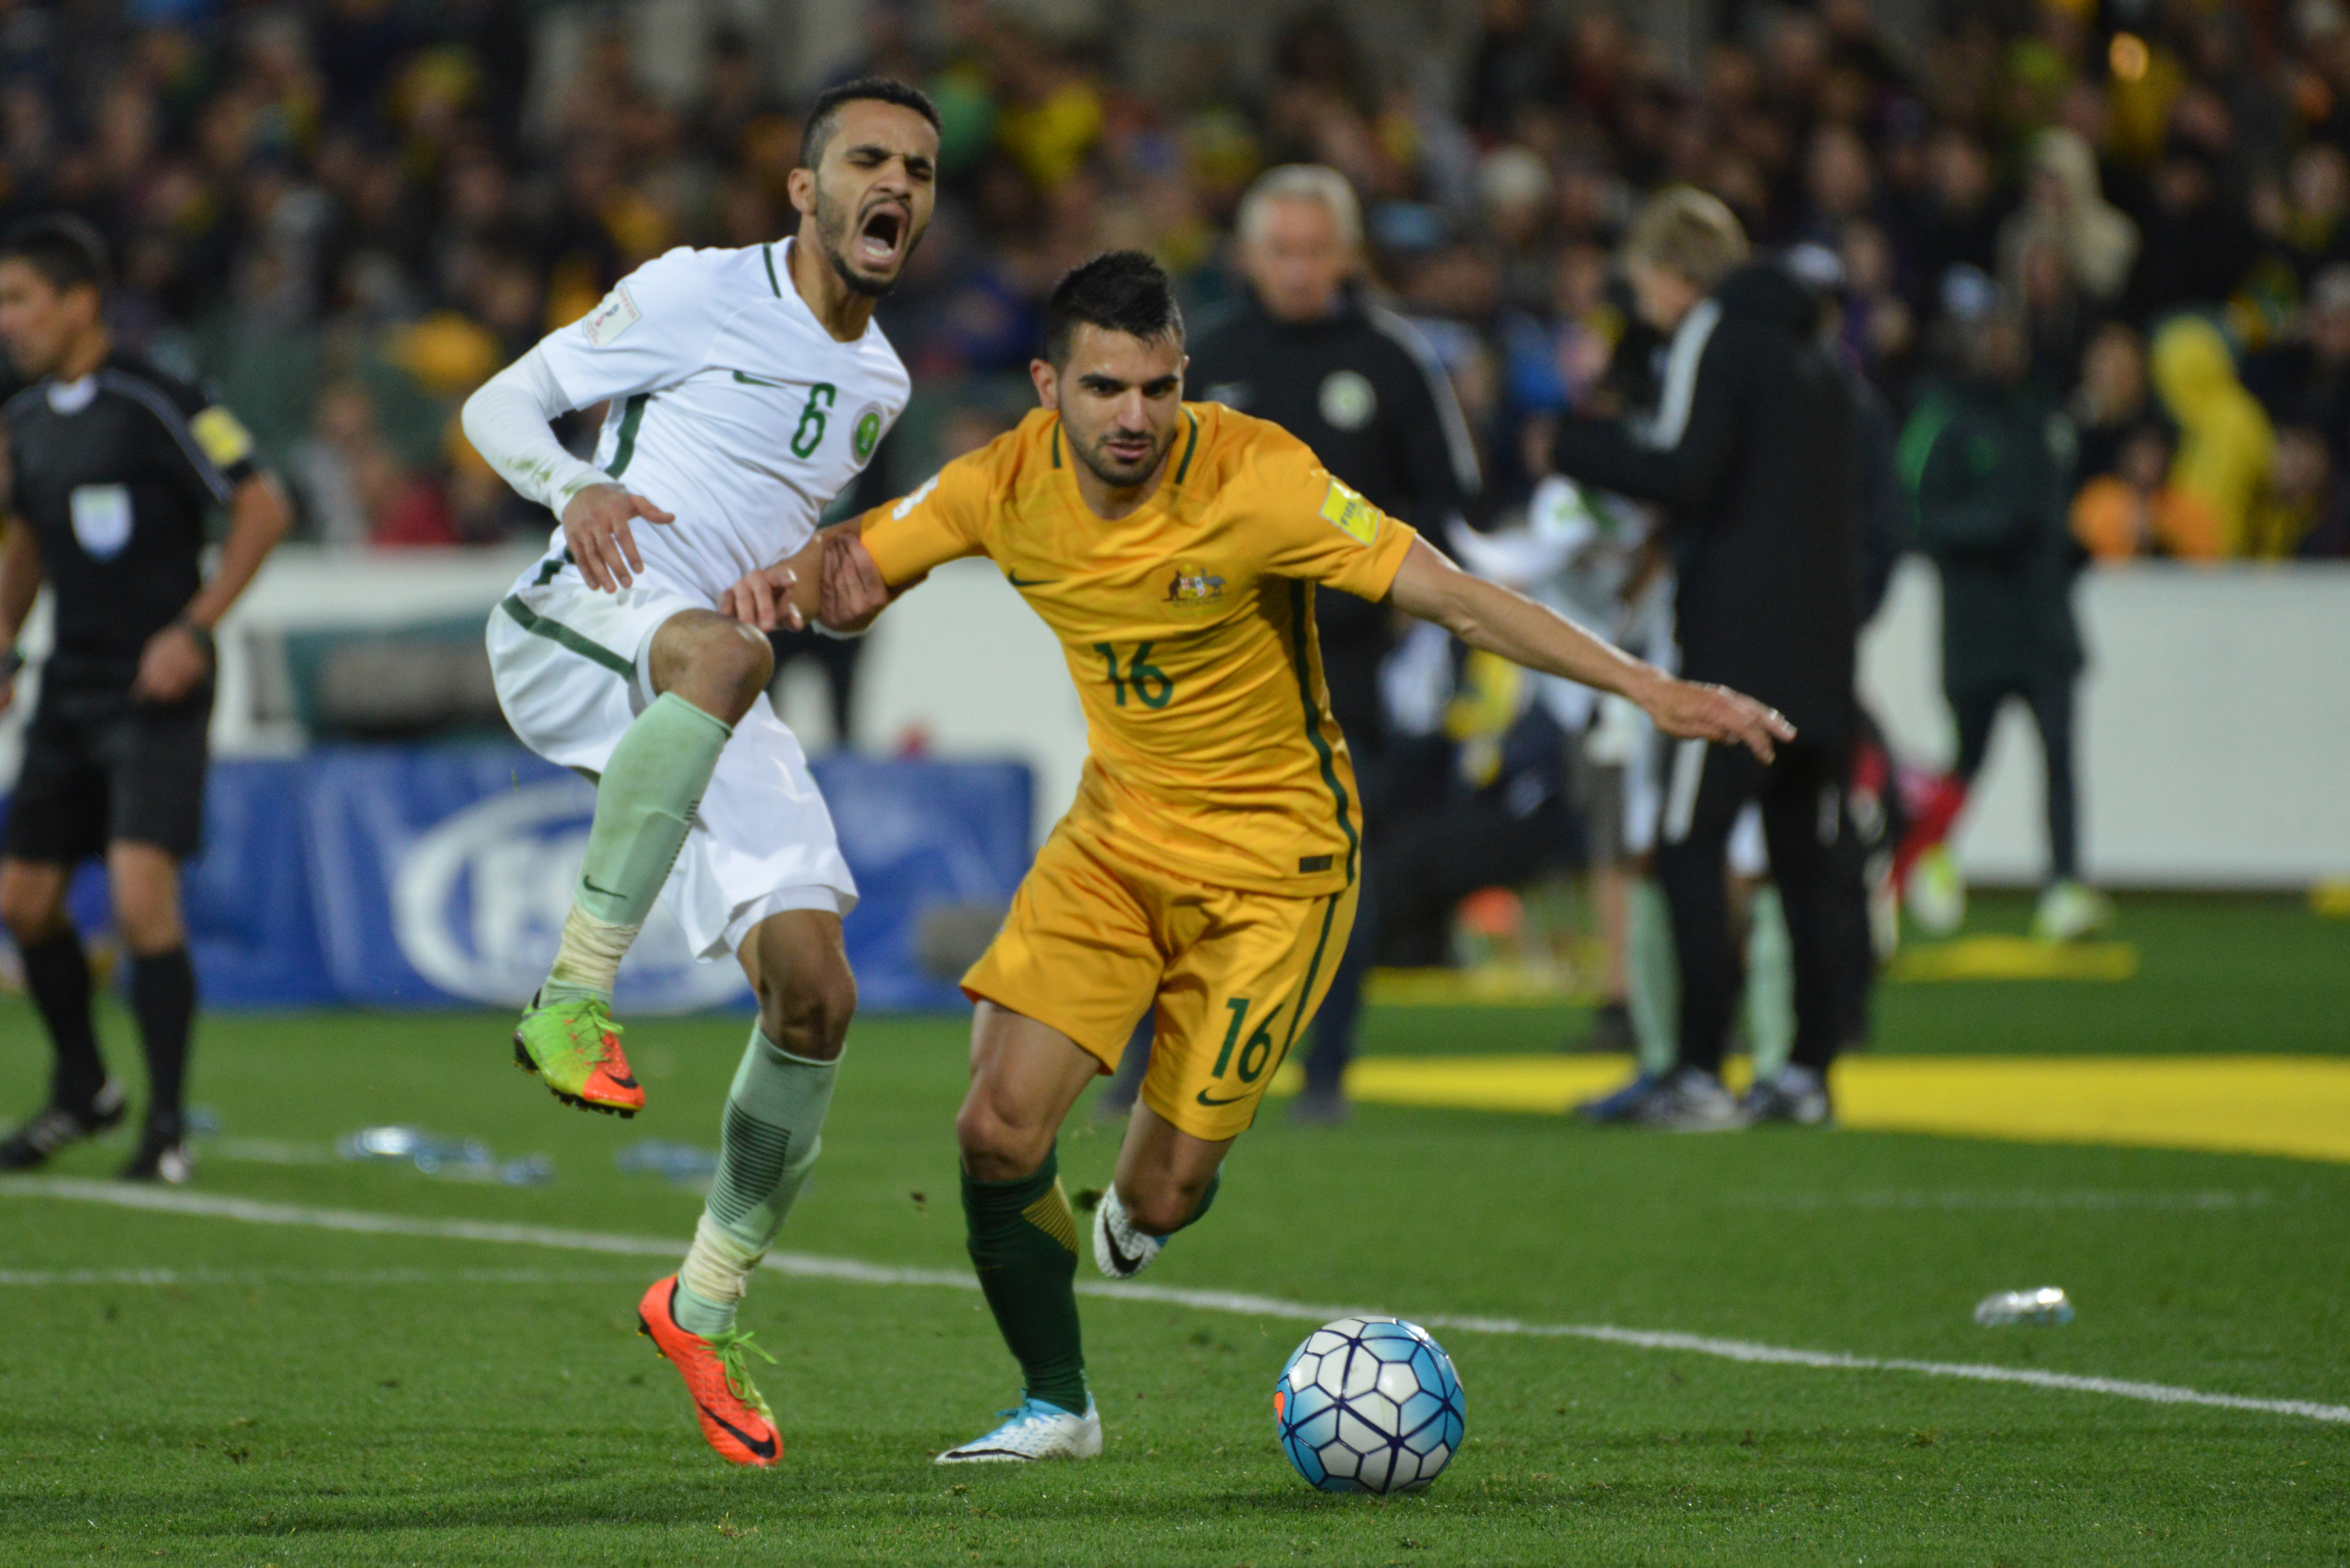 Aziz Behich was brought on at the break and Australia immediately got back on the front foot.